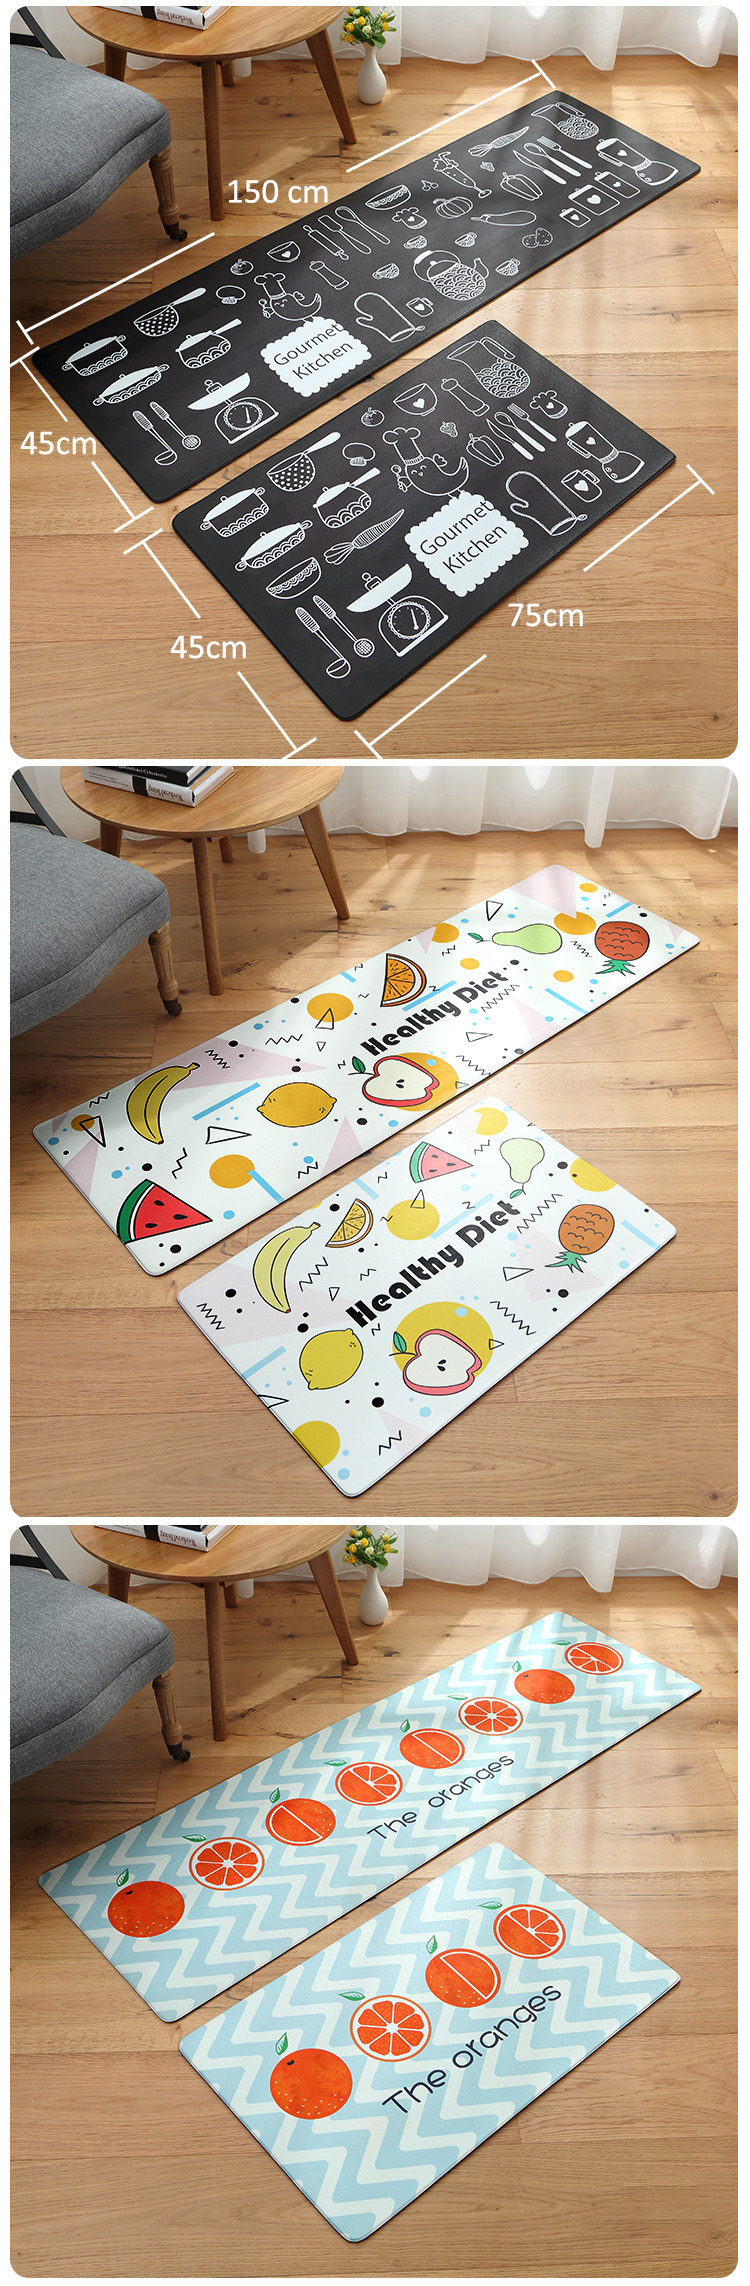 Kitchen Mat Waterproof/Oil-proof/ PVC Leather/Anti-fatigue Kitchen Carpet/Non-slip/Wear-resistant Best Children's Lighting & Home Decor Online Store